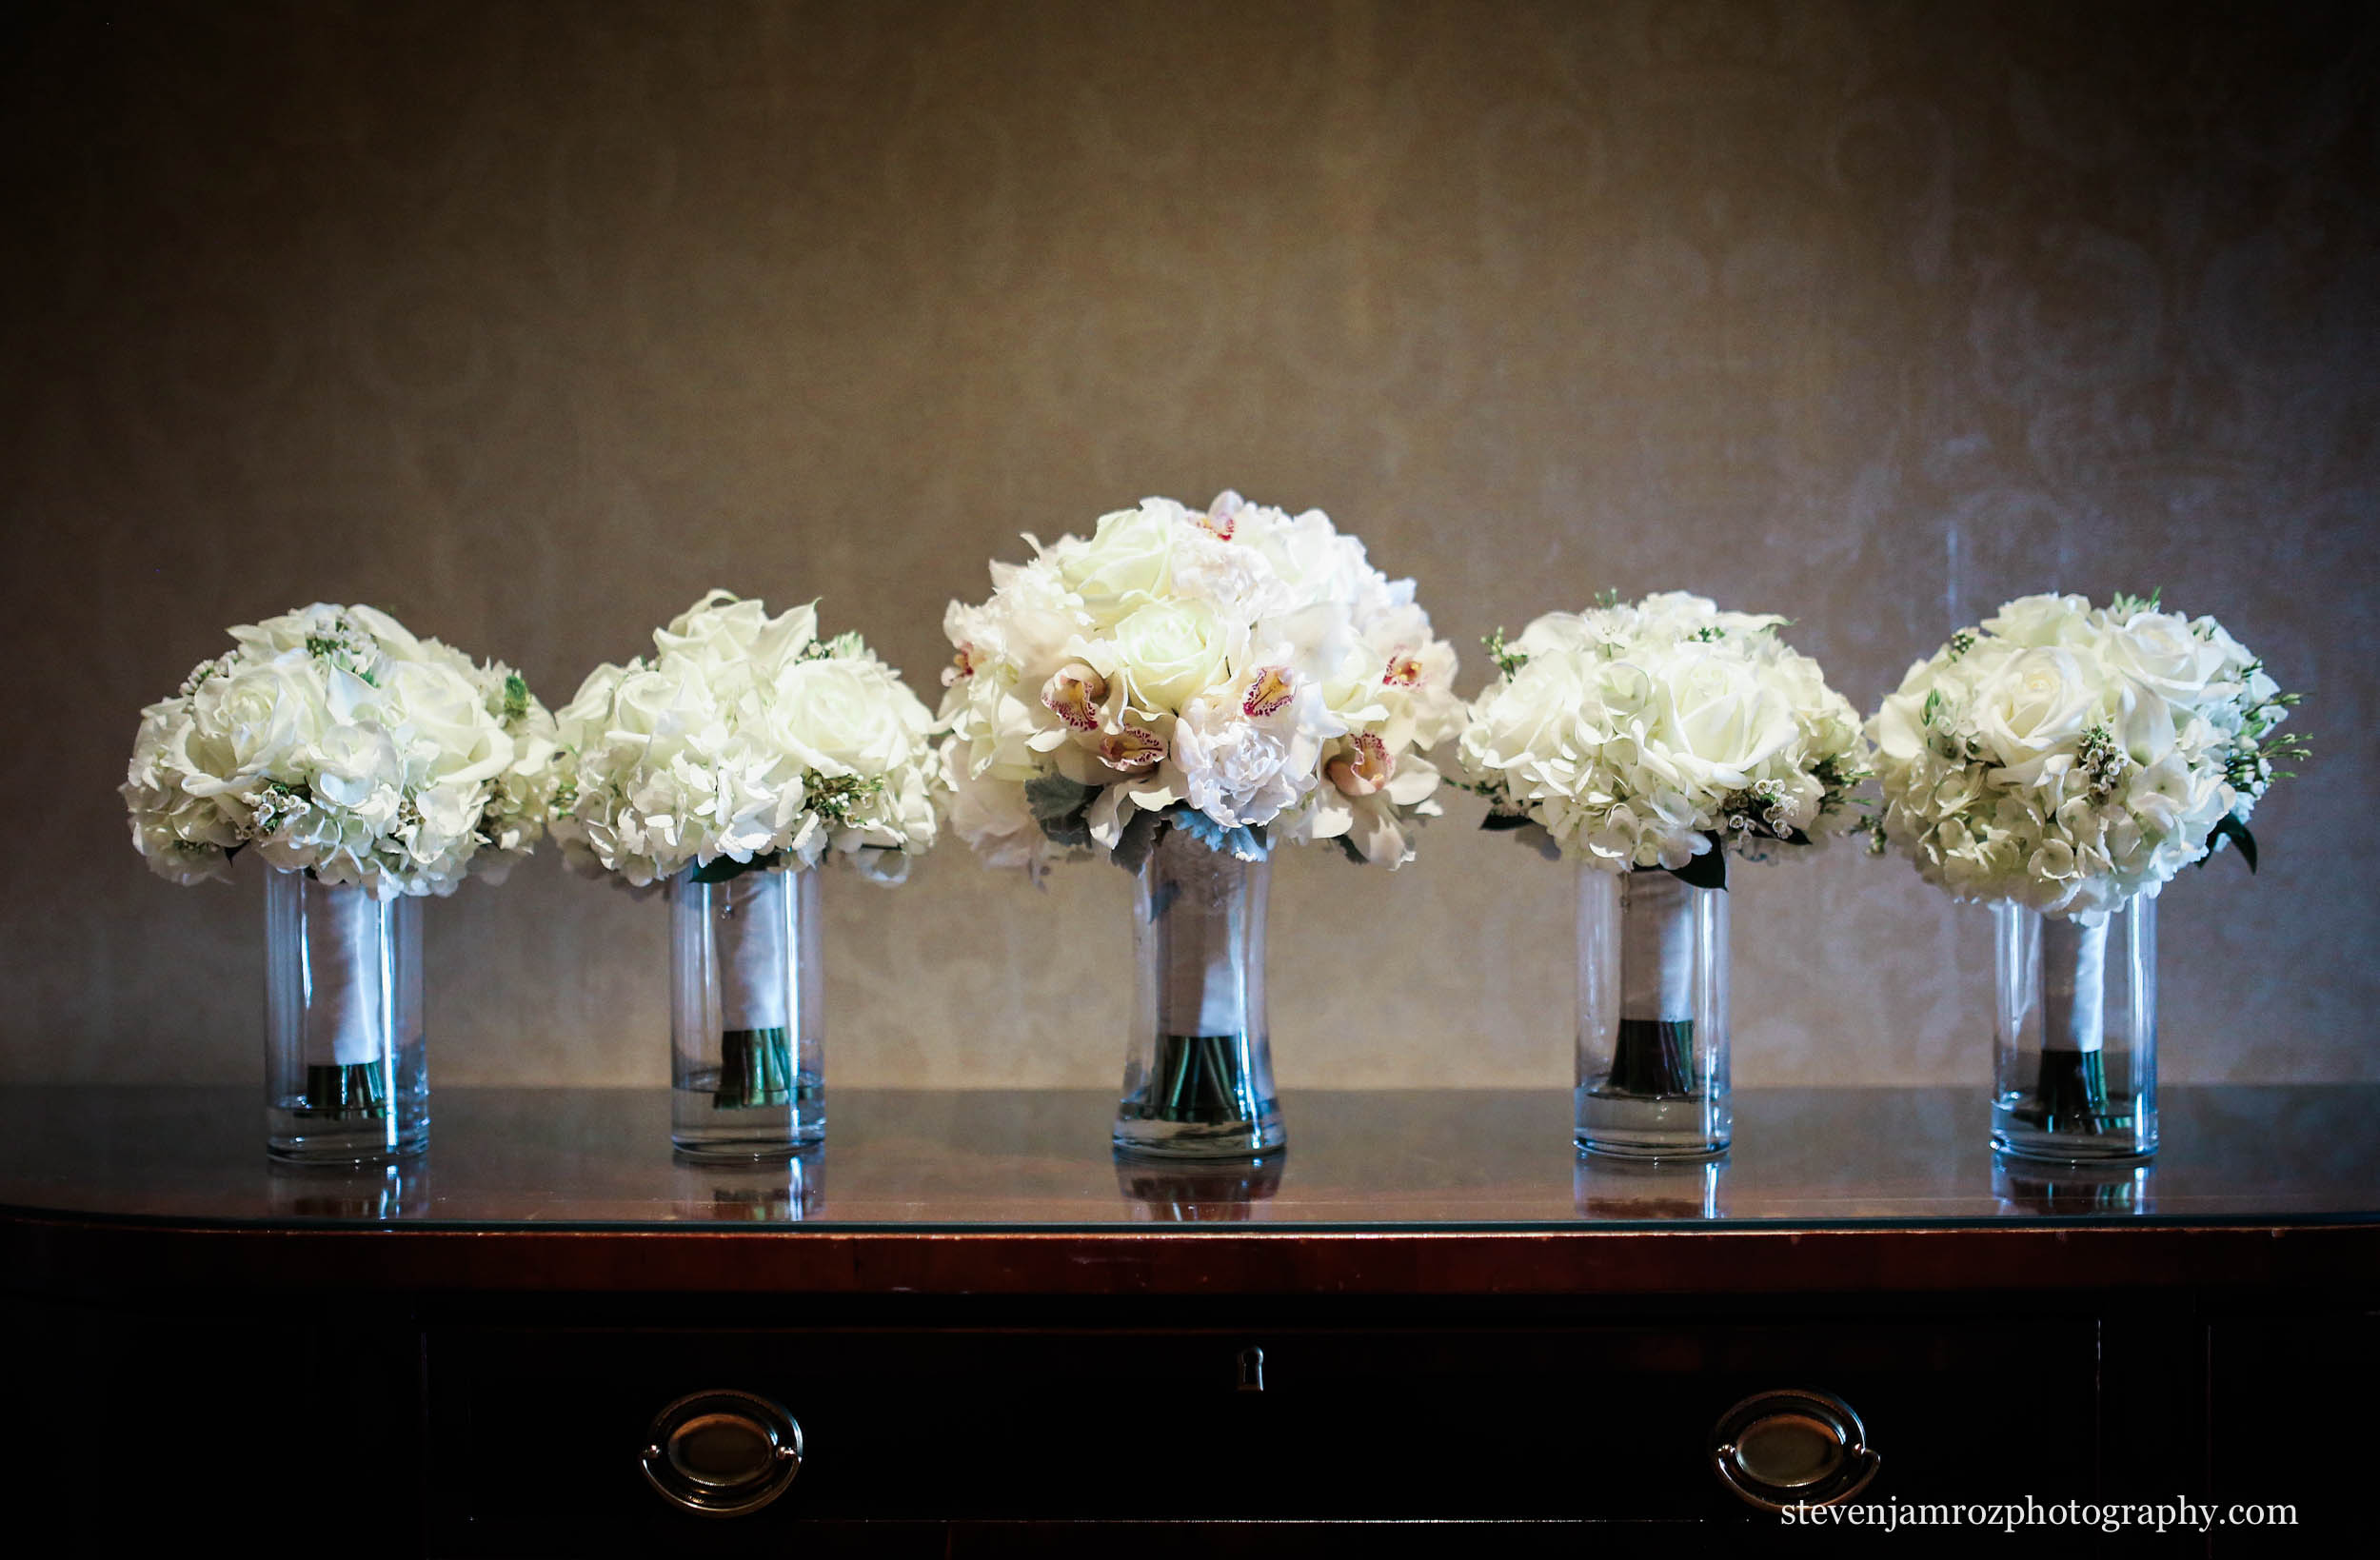 north-raleigh-country-club-wedding-steven-jamroz-photography-0431.jpg